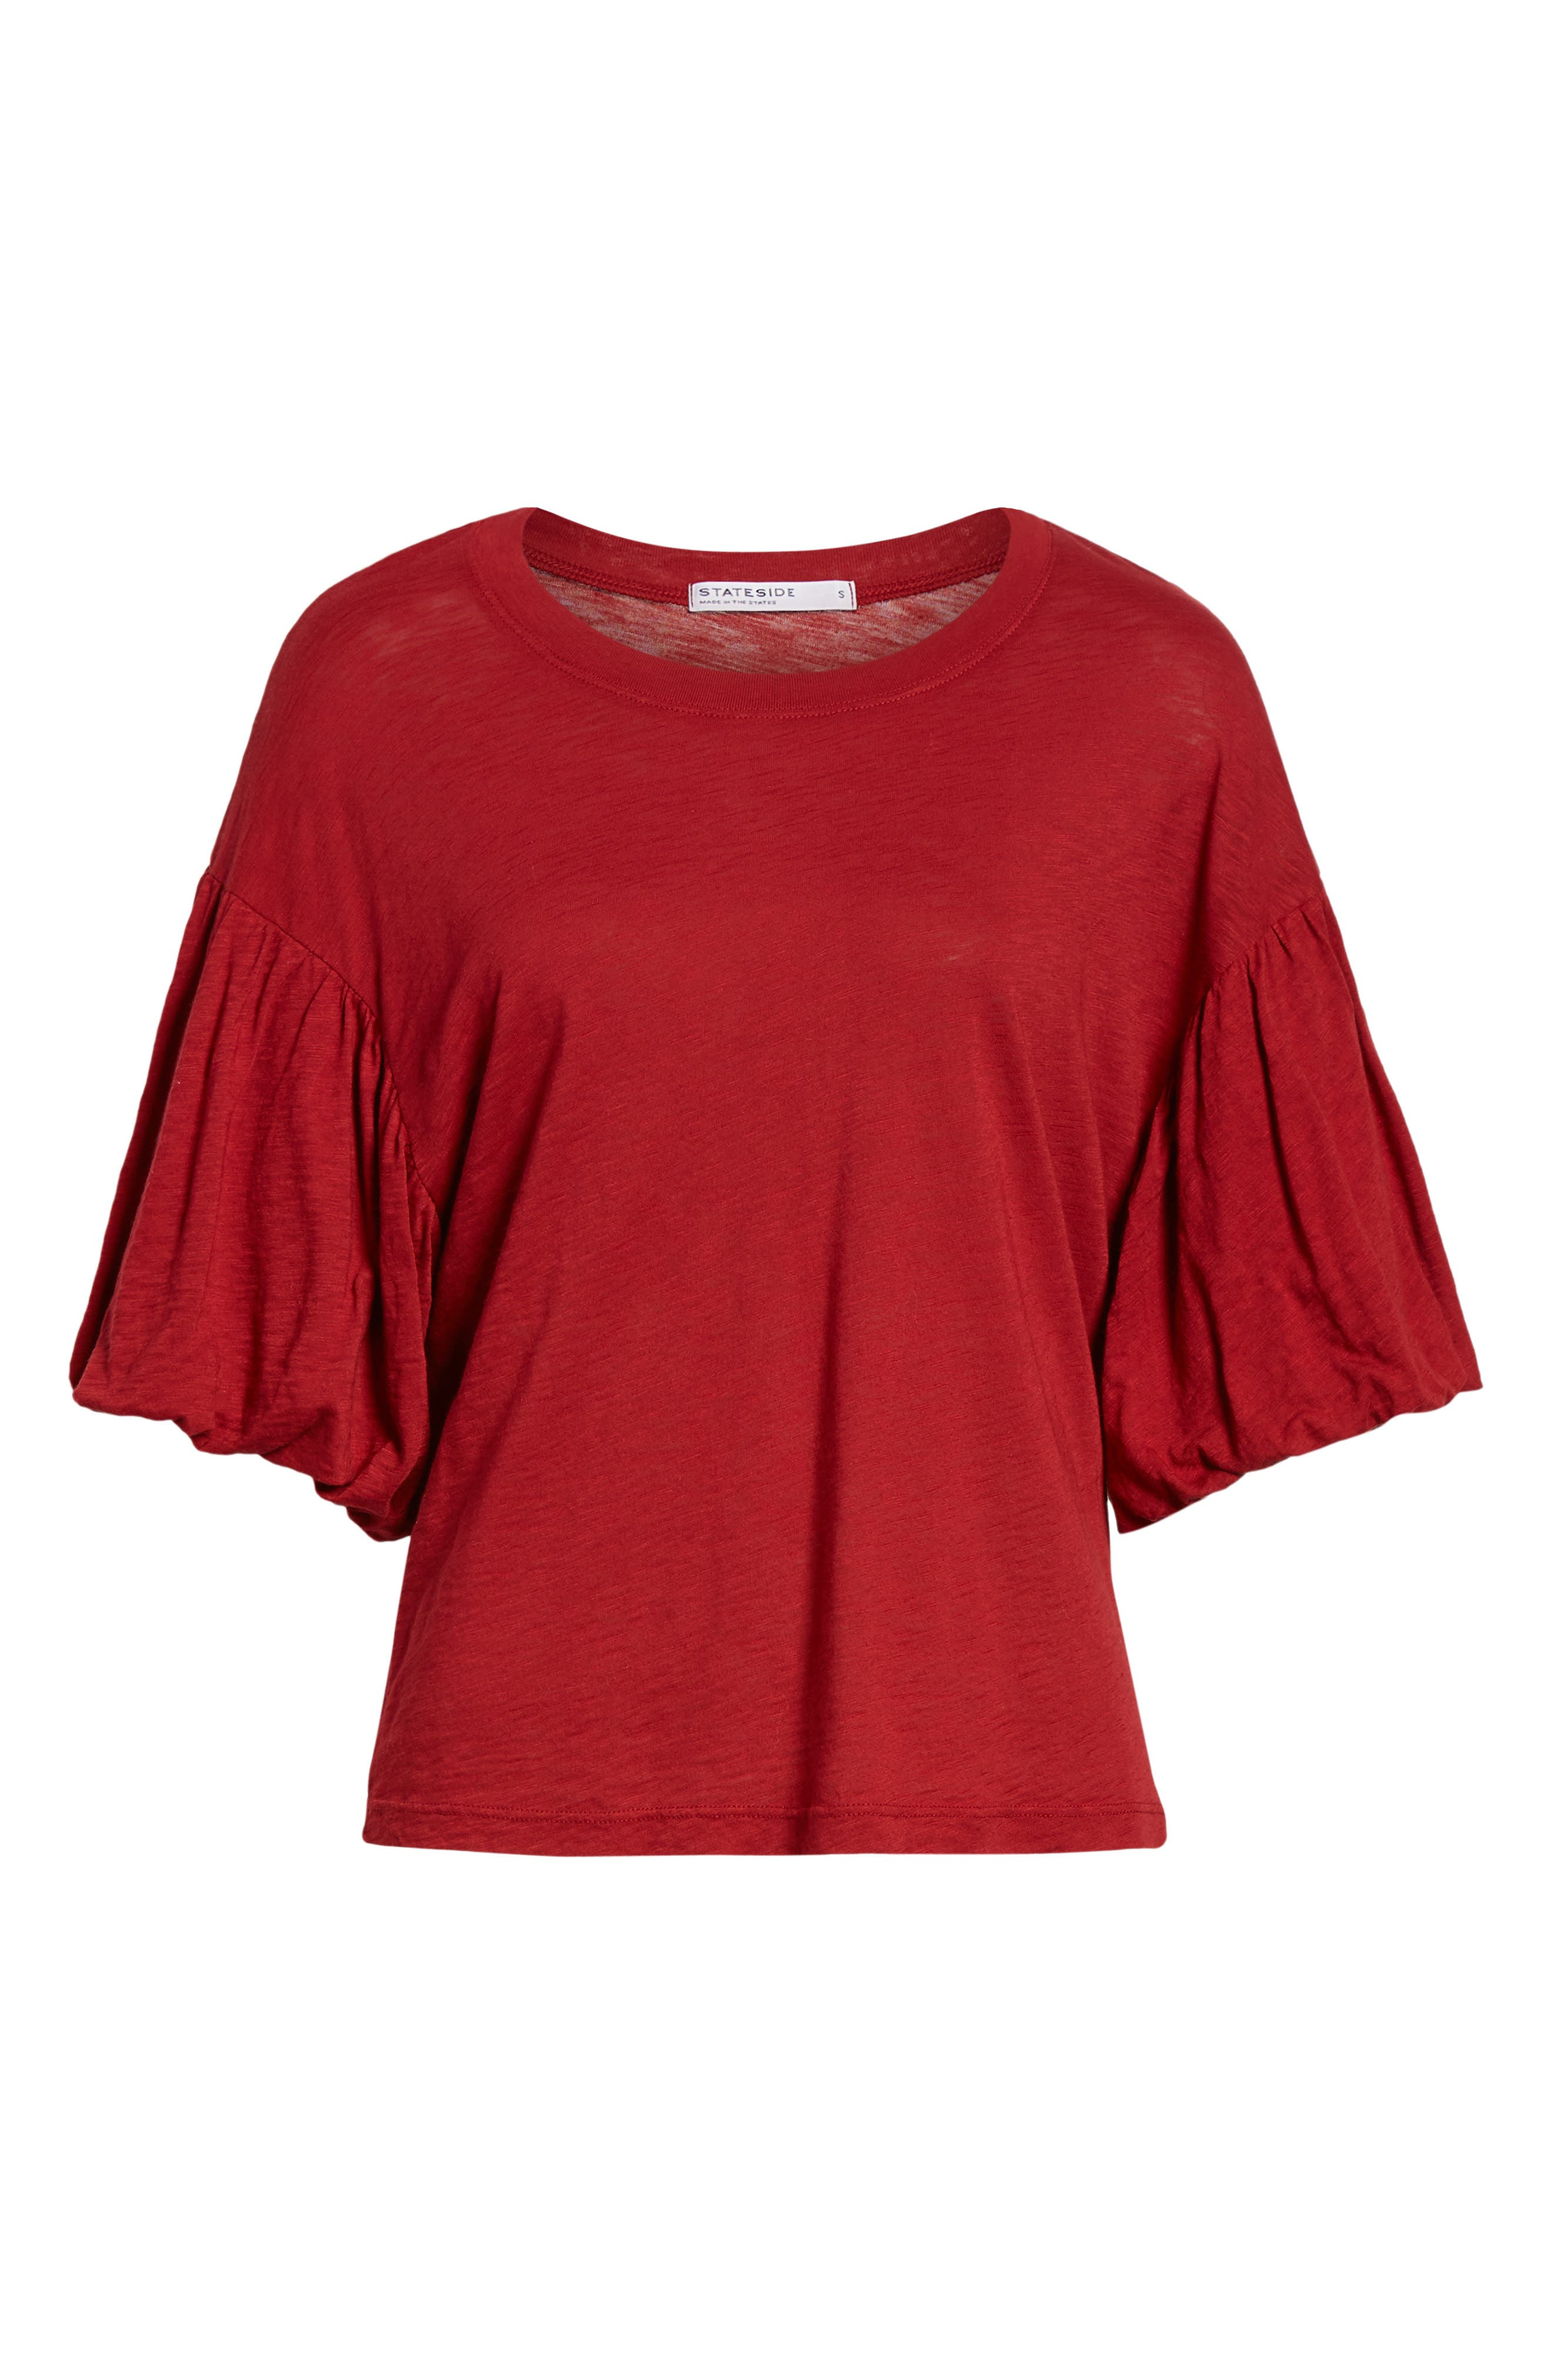 Ruffle Sleeve Slub Tee,                             Alternate thumbnail 6, color,                             DEEP RED